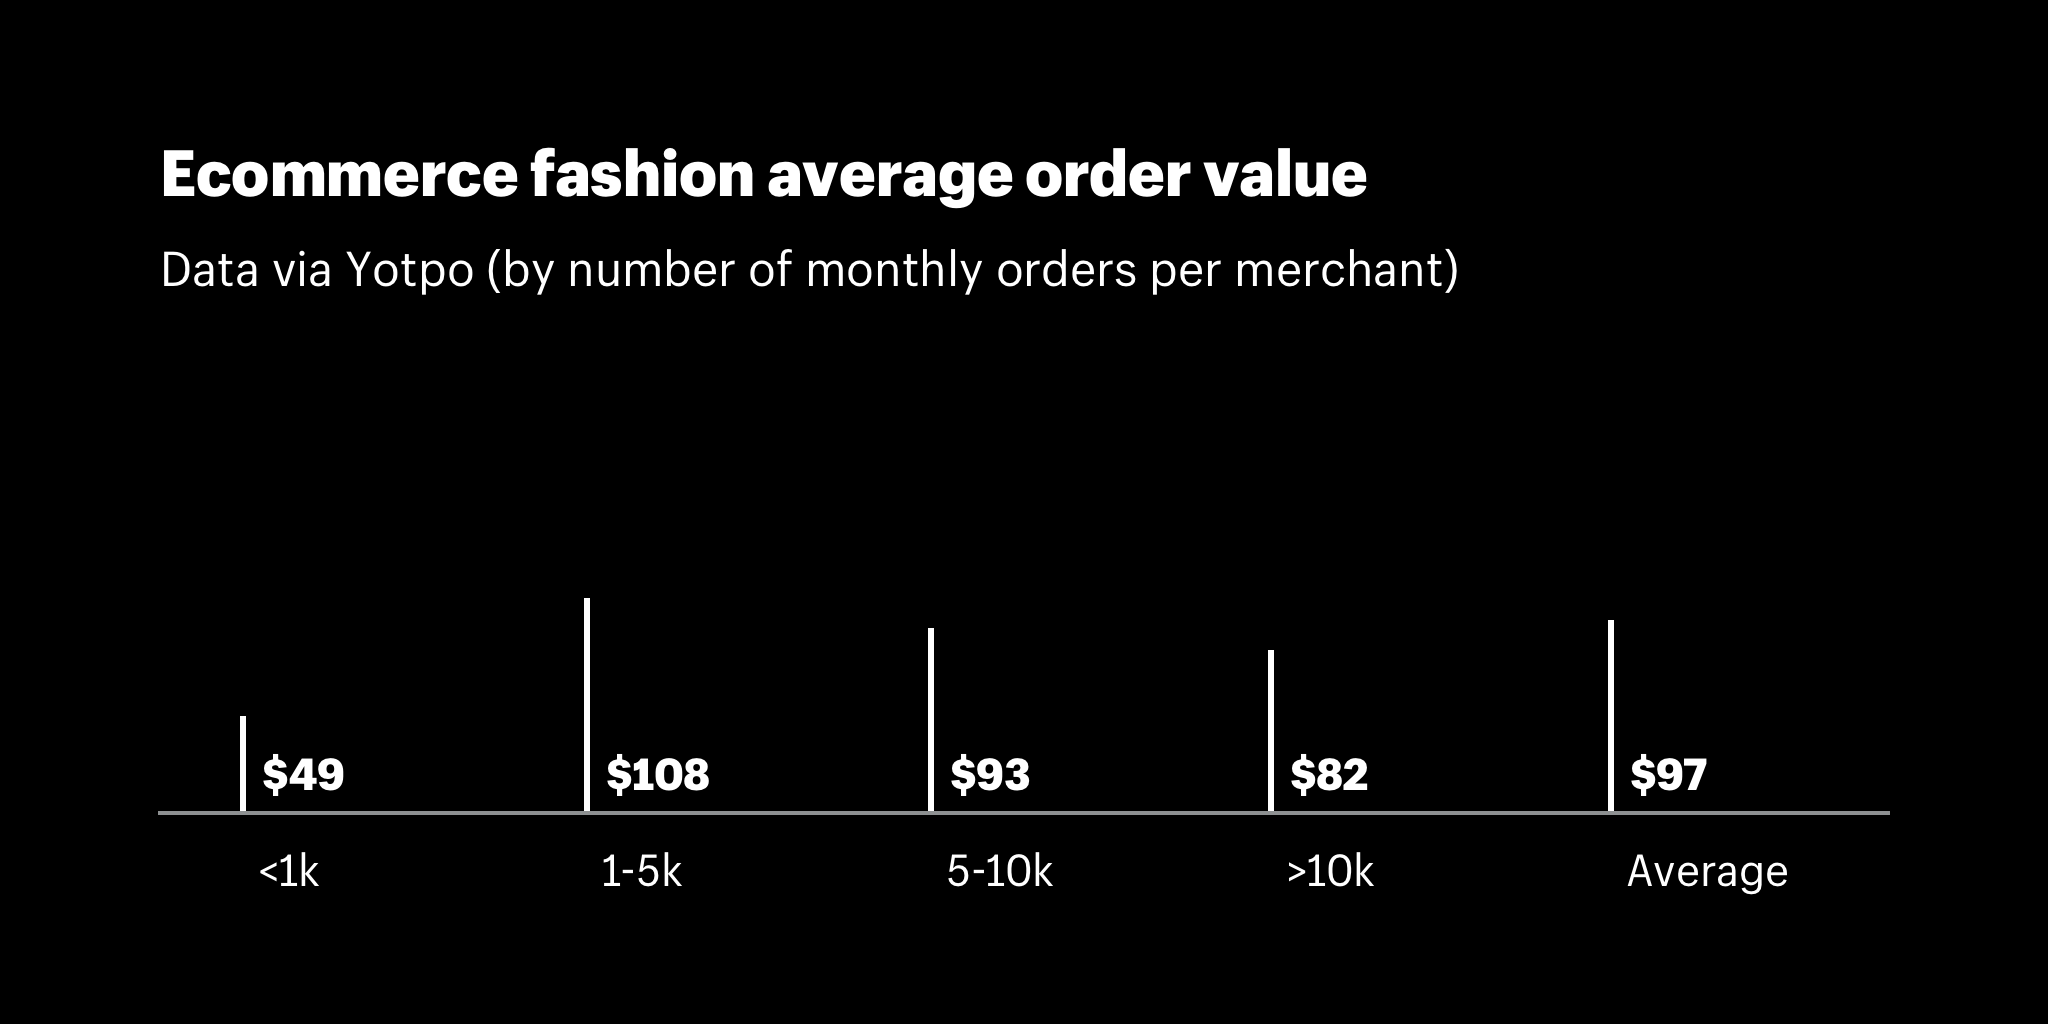 Ecommerce fashion average order value